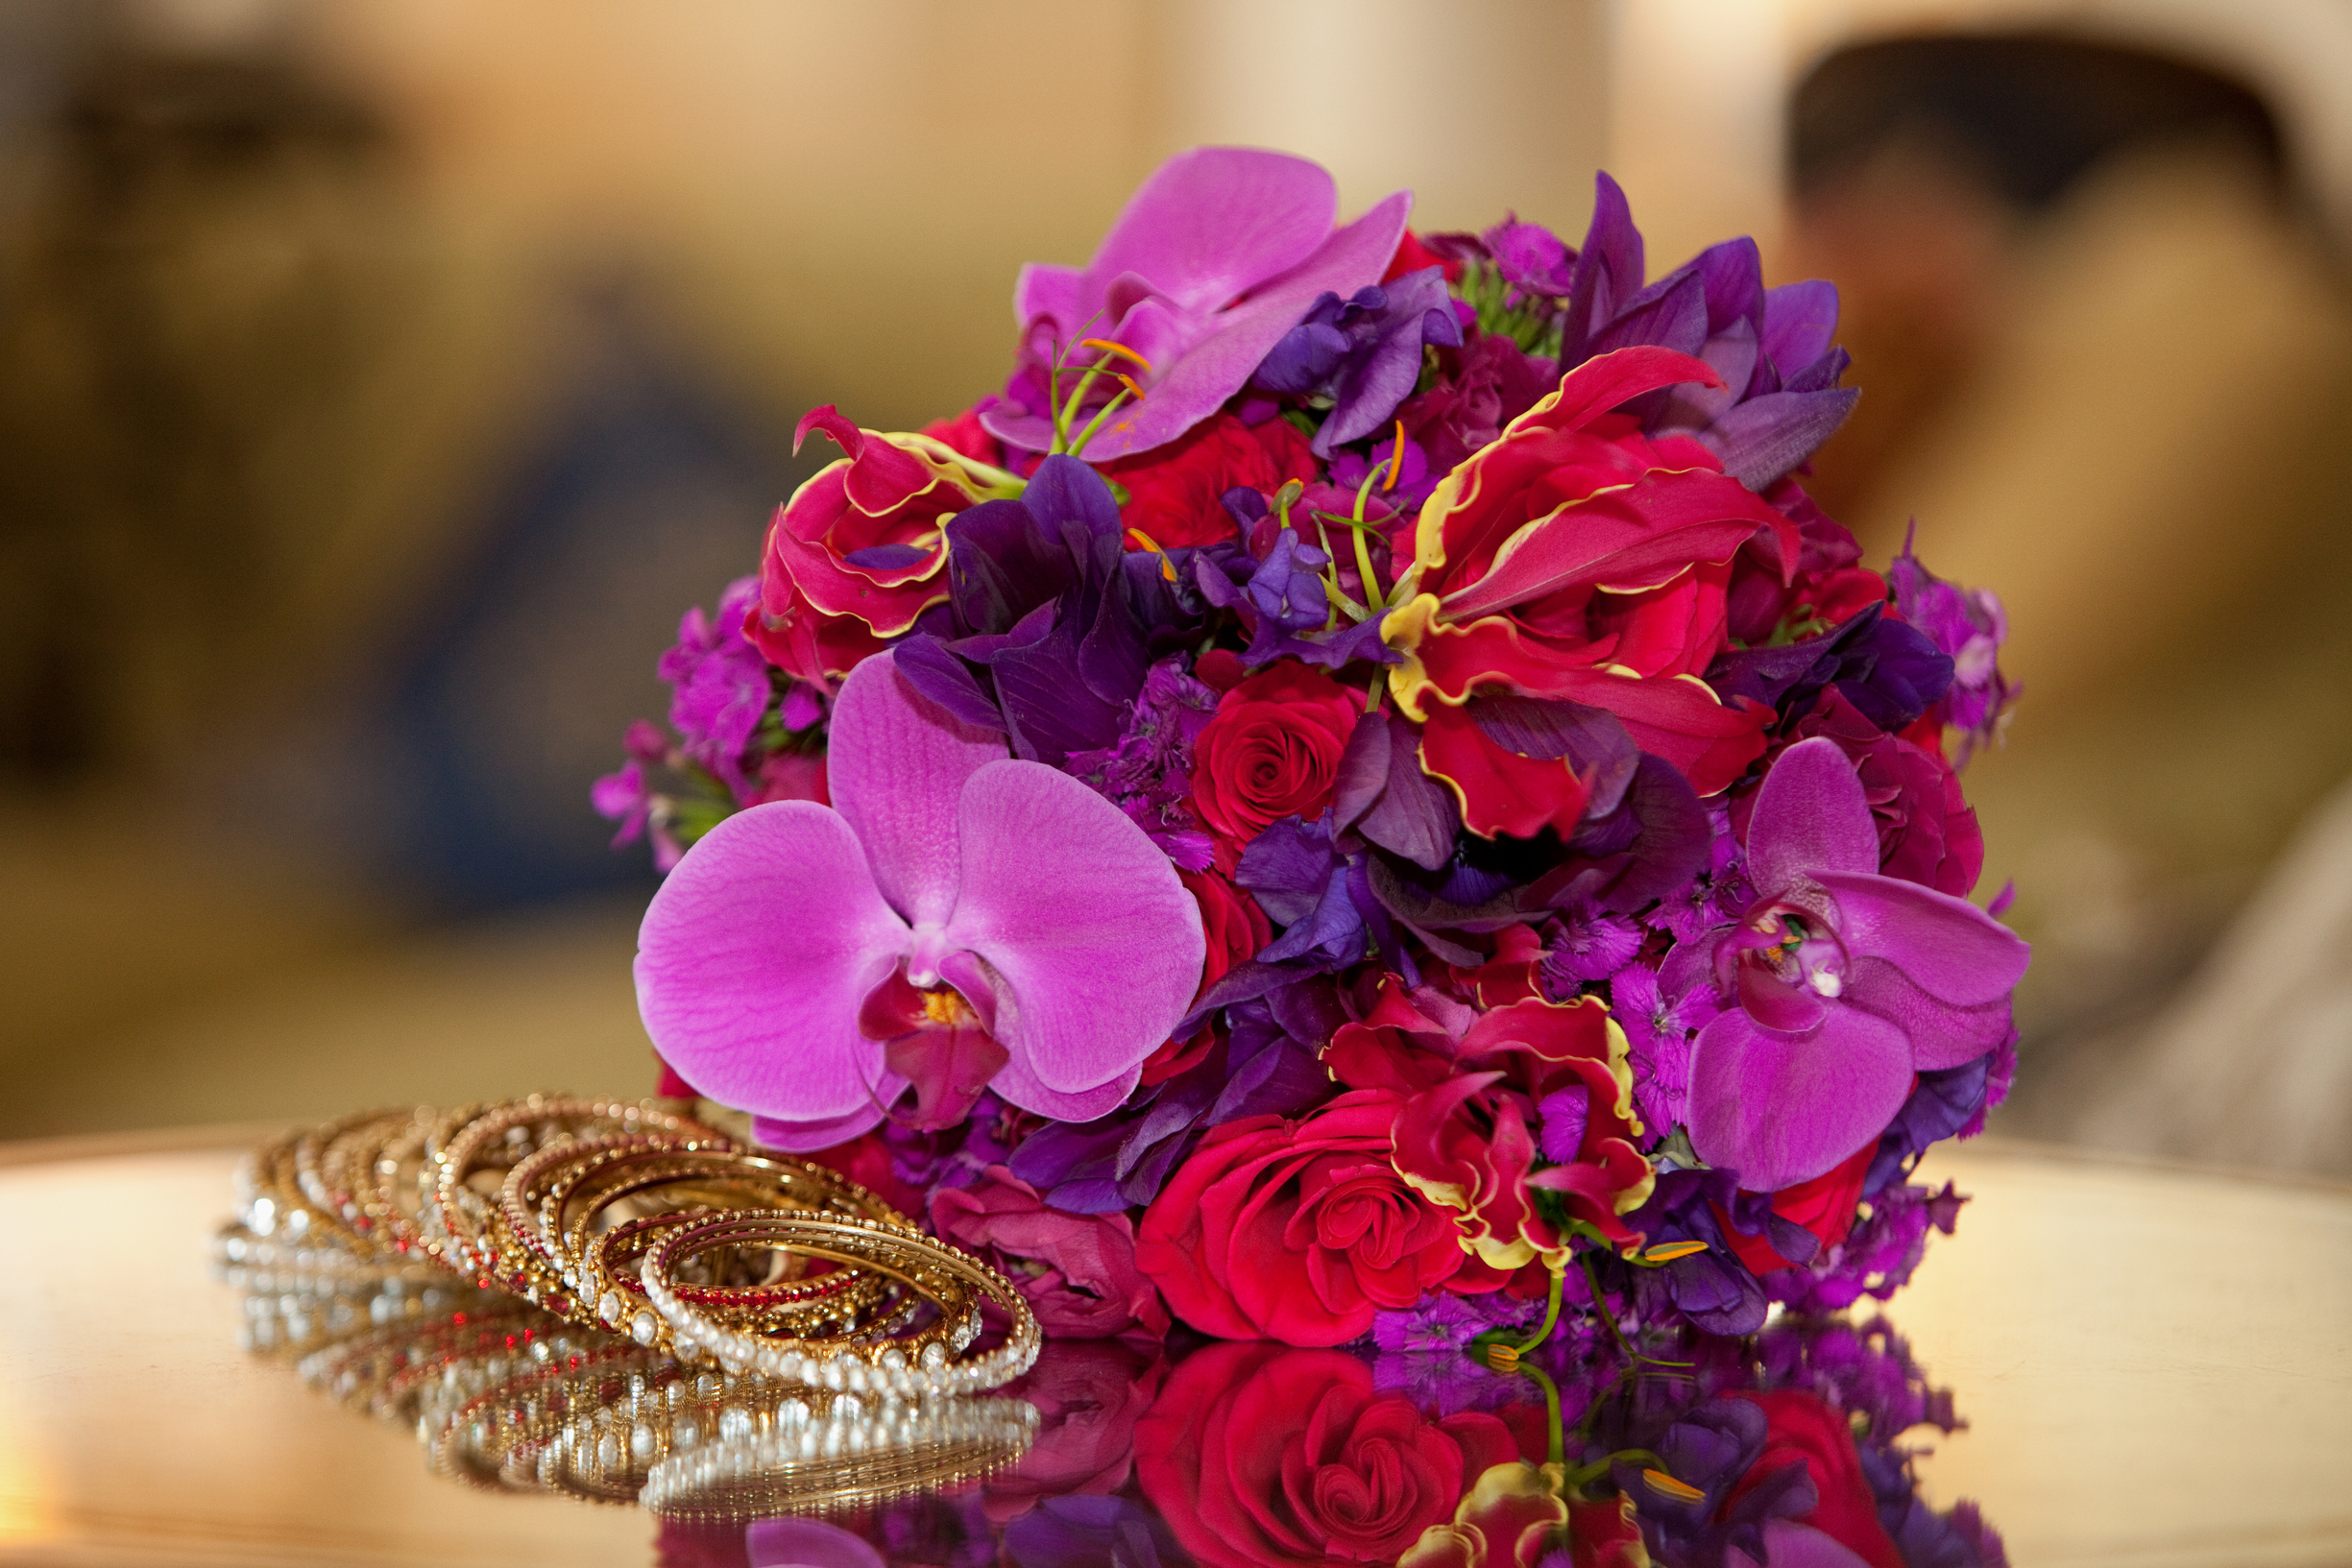 Red, Pink, and Purple Flowers